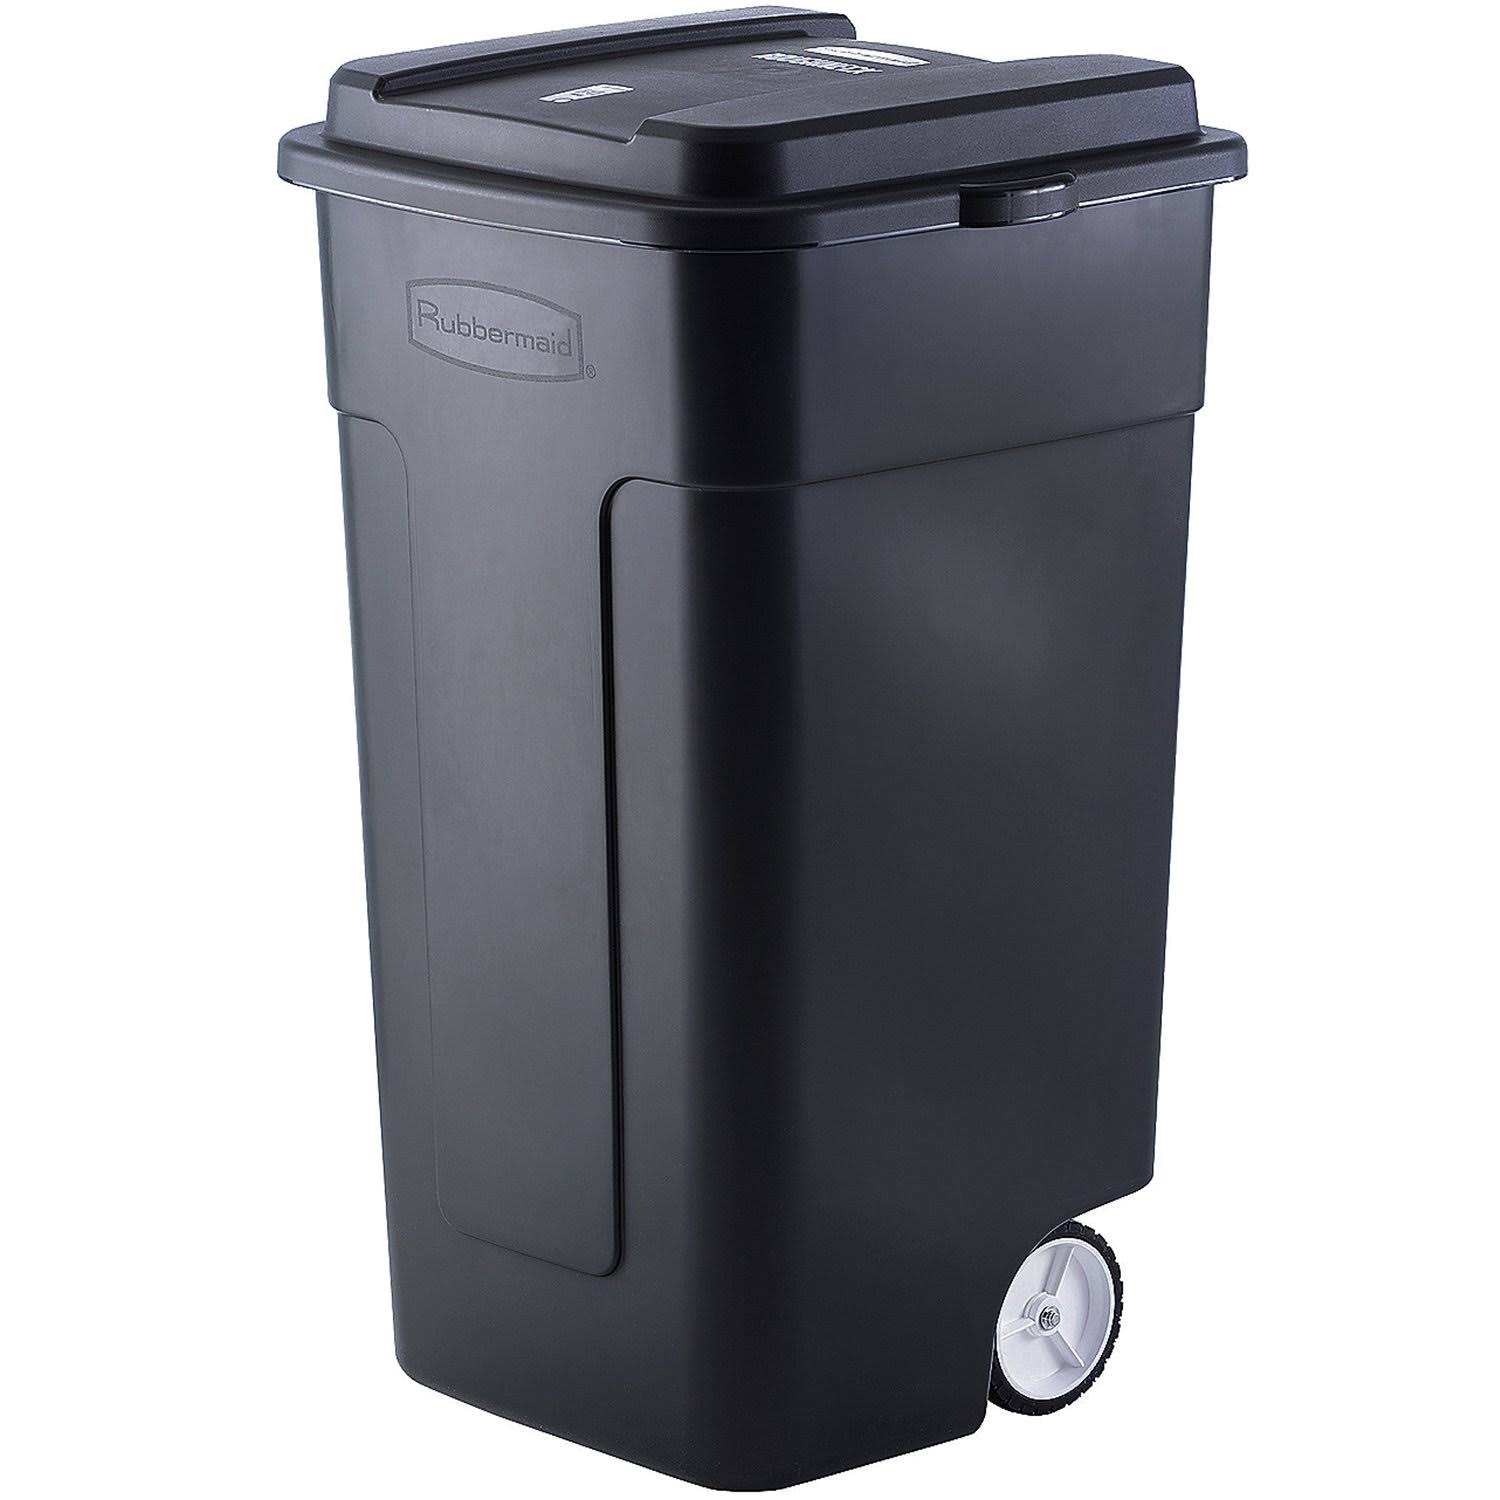 Rubbermaid Home Trash Can - Black, 189.3l